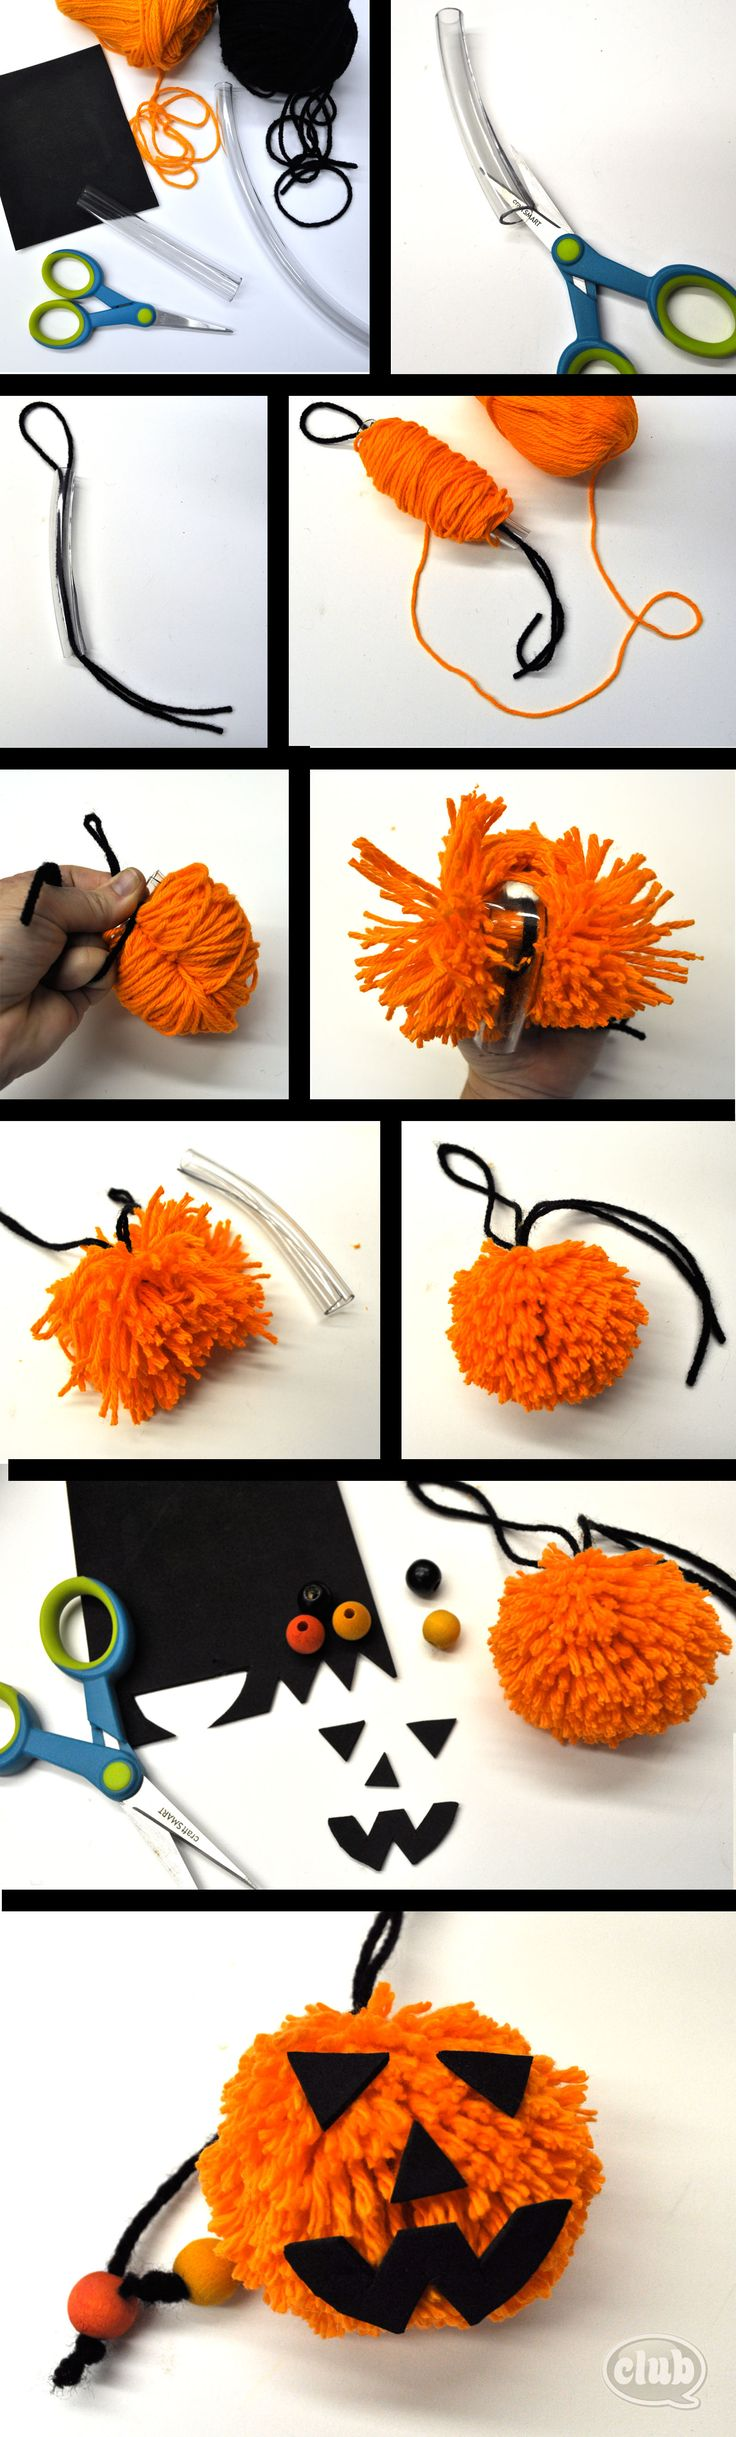 Pumpkin Pom Pom DIY | Tween Crafts - Connecting Mom and Daughter through crafting